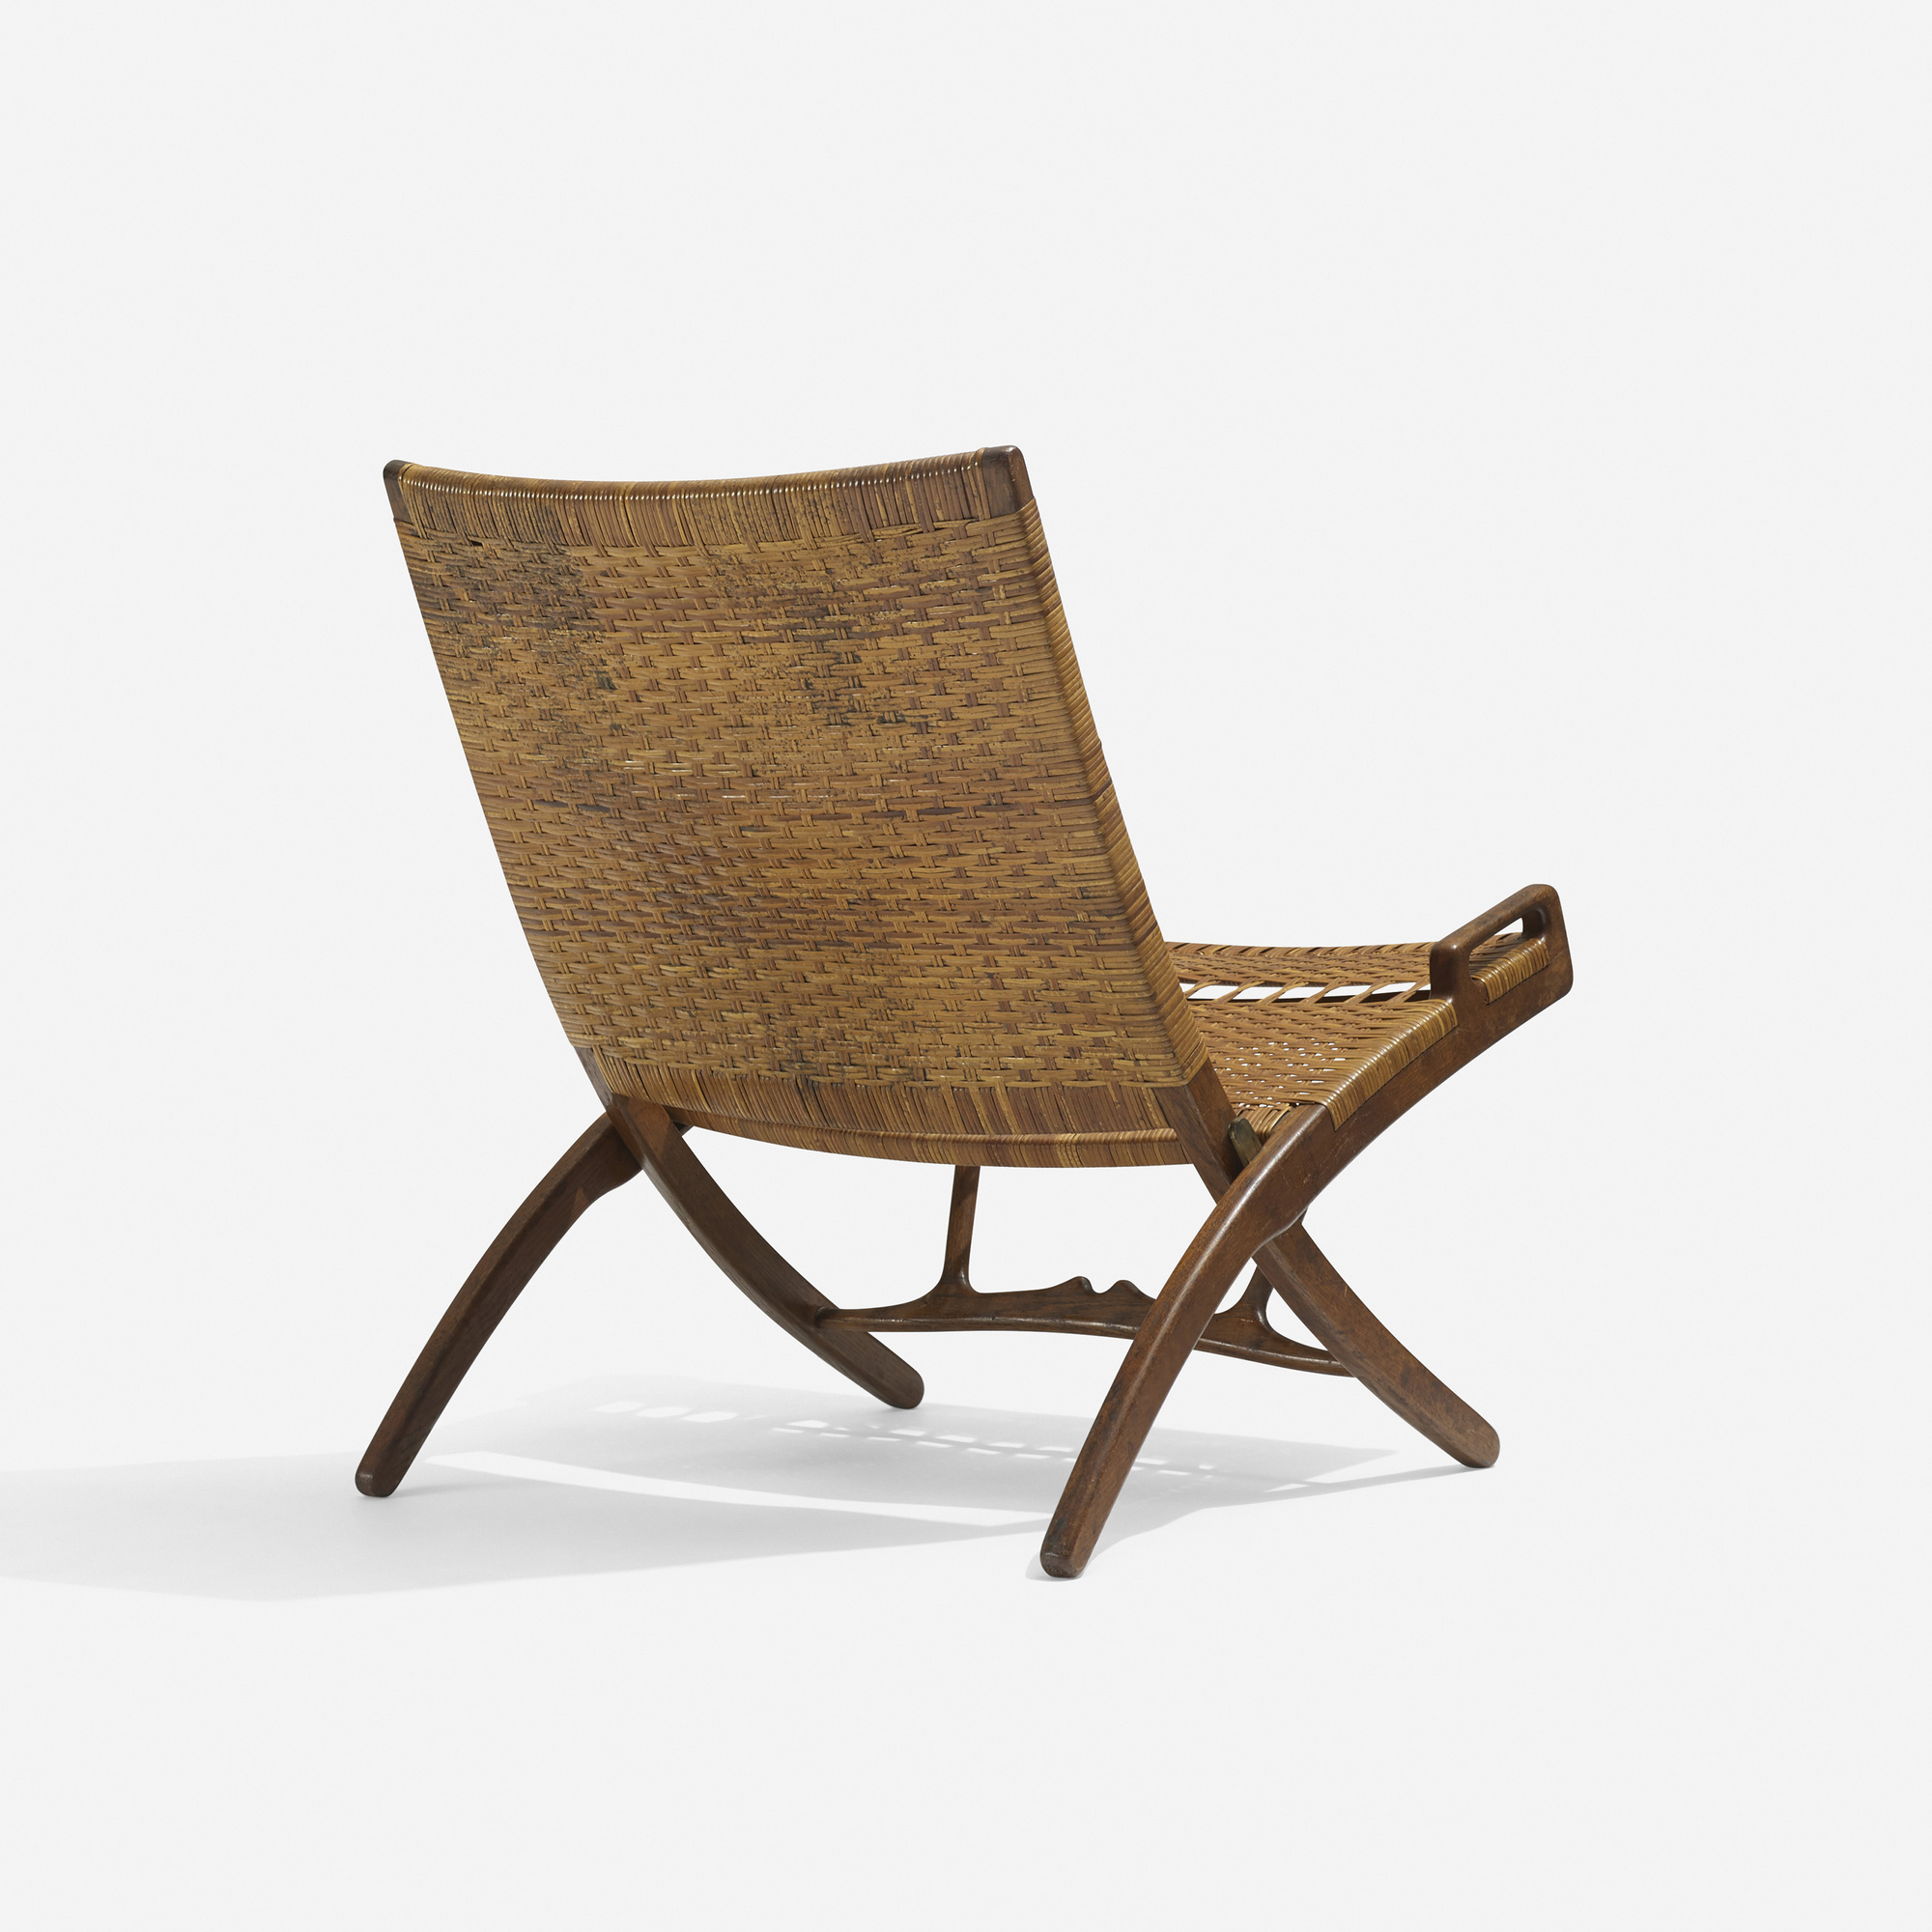 Hans Wegner Folding Chair 148 Hans J Wegner Folding Chair